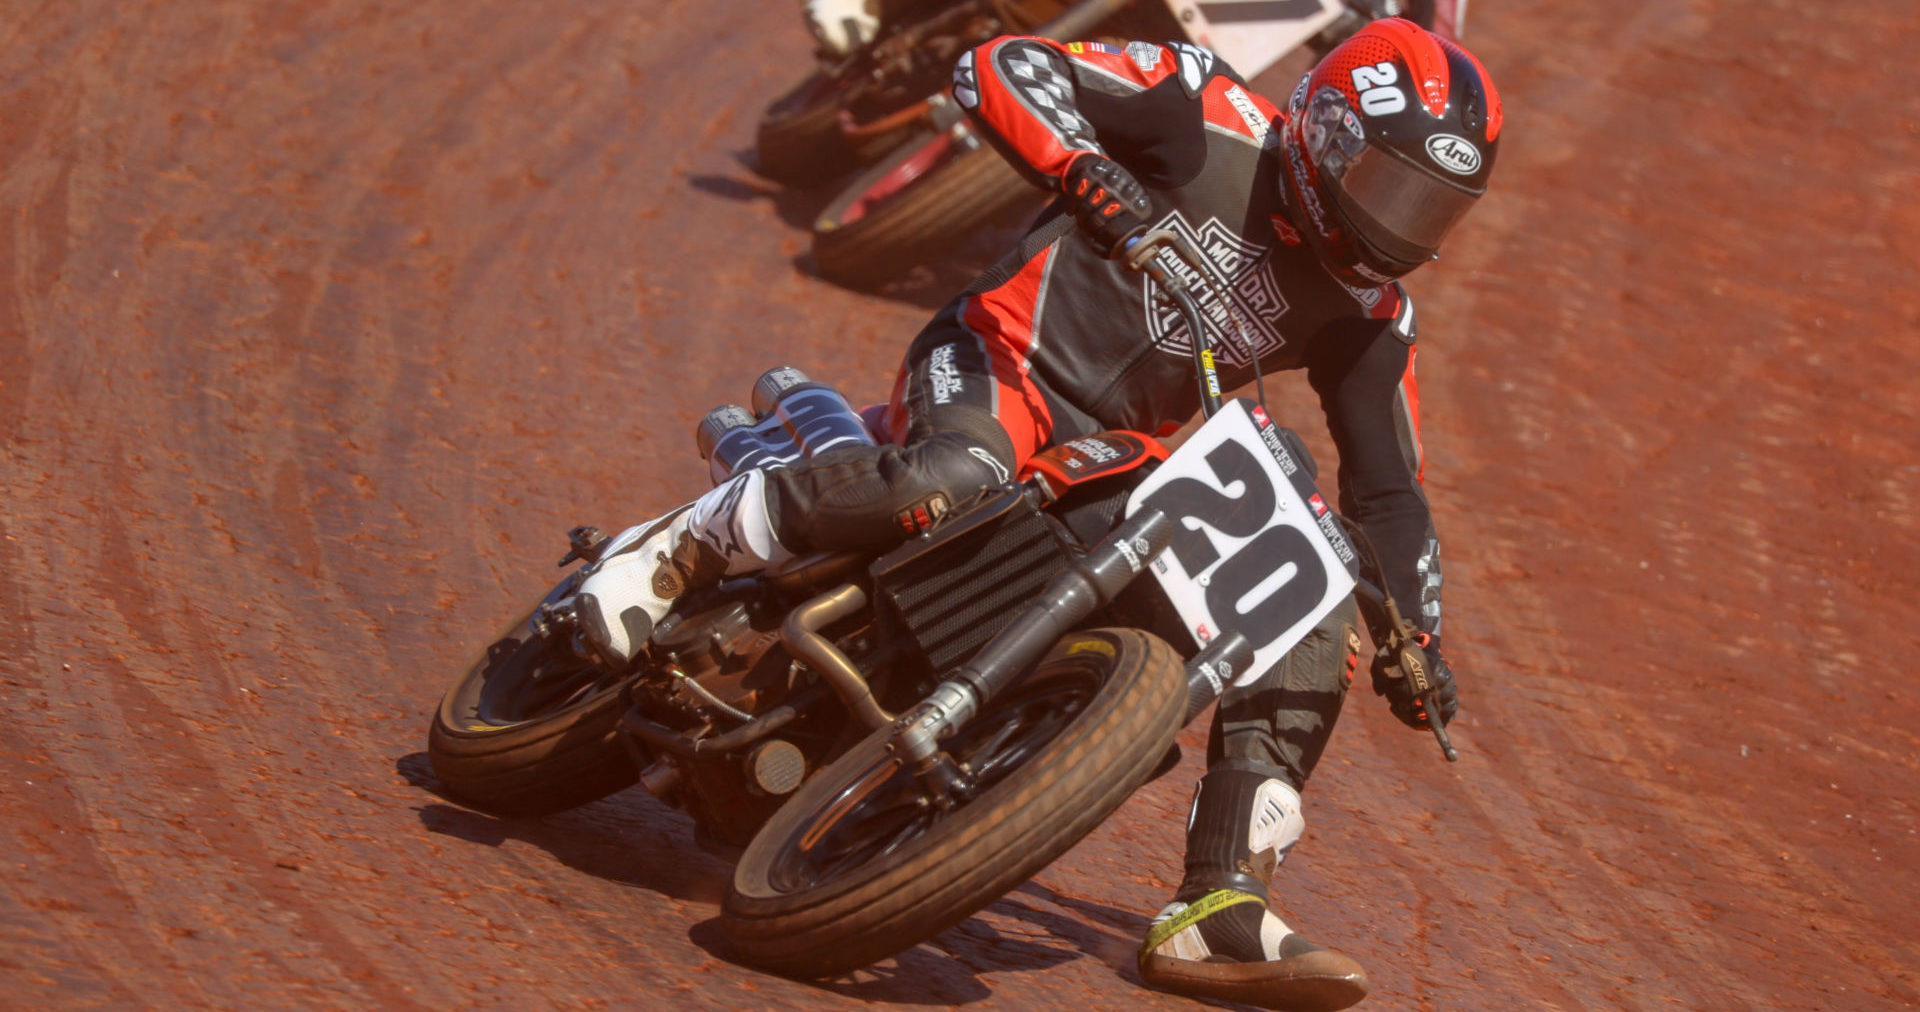 Jared Vanderkooi (20) returns to the Harley-Davidson factory team for the 2020 American Flat Track (AFT) SuperTwins Championship. Photo by Scott Hunter, courtesy of AFT.